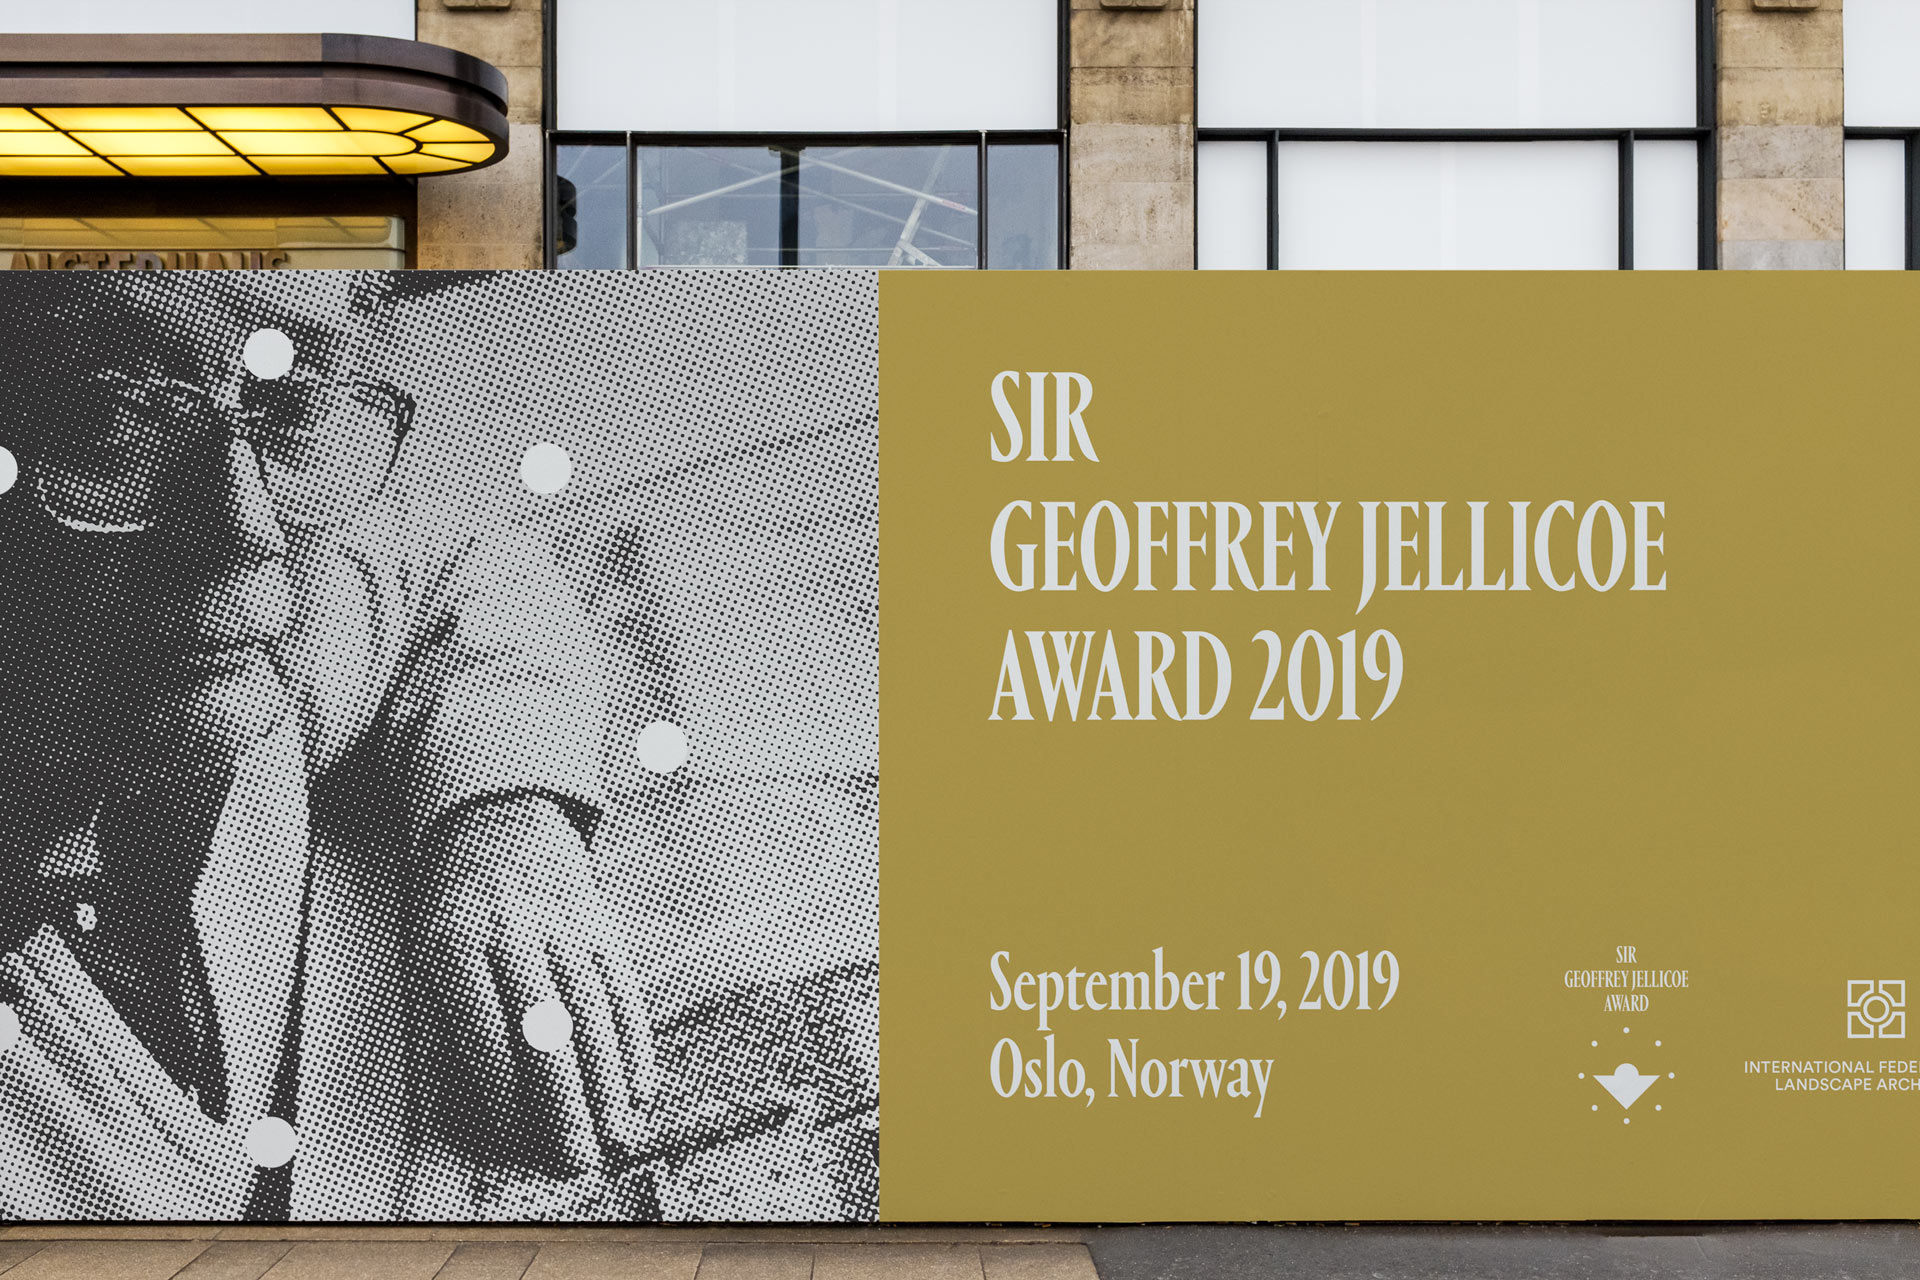 The IFLA Sir Geoffrey Jellicoe Award